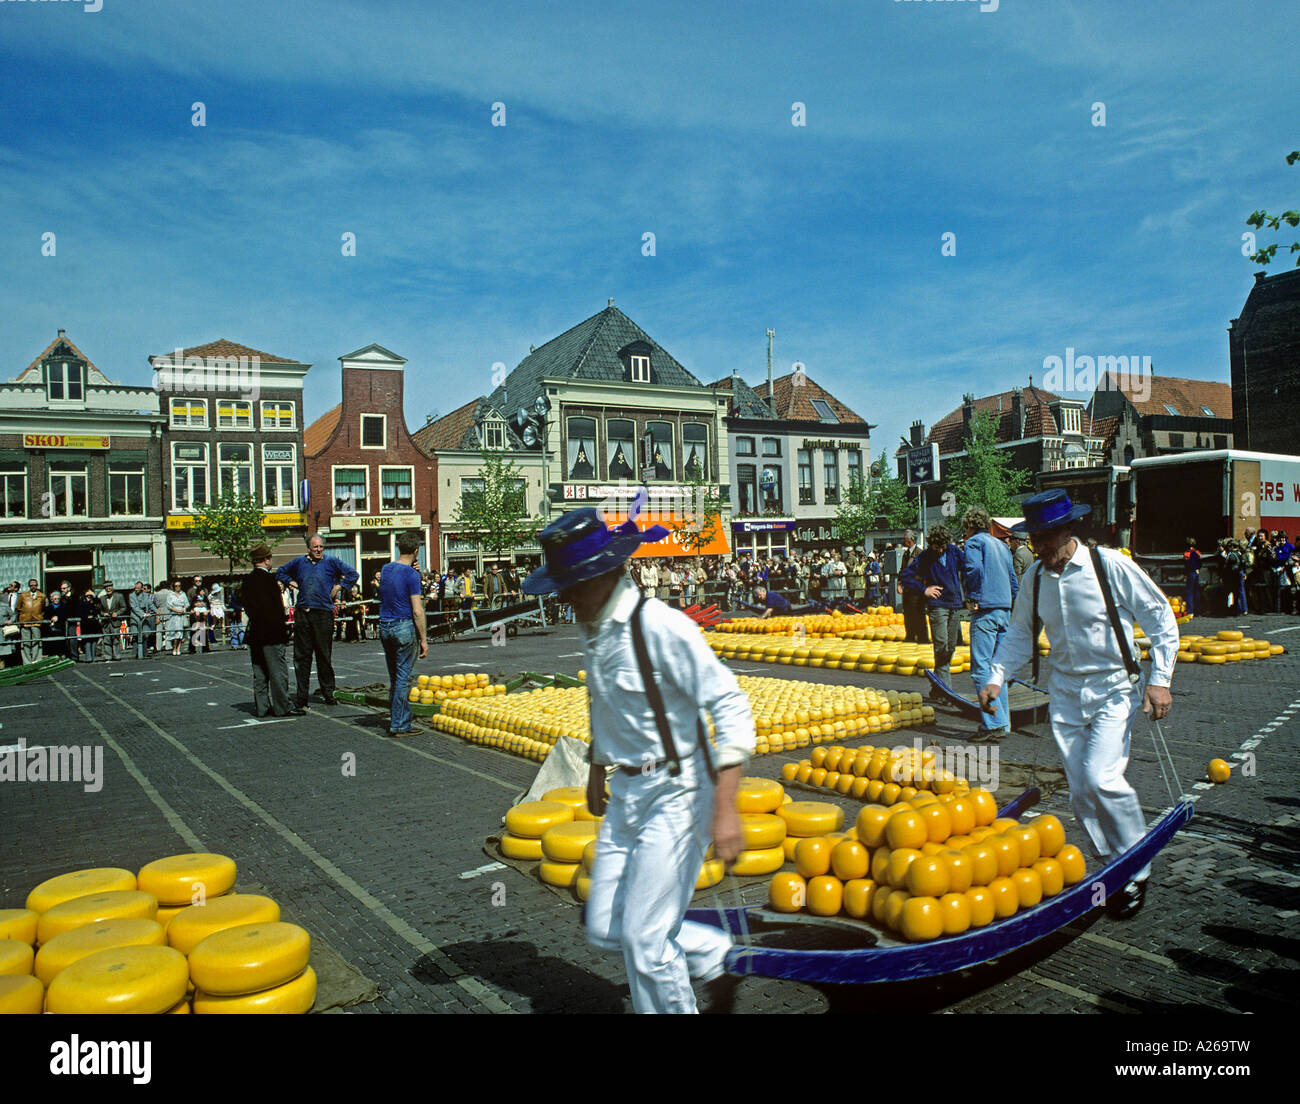 Auction of cheeses in the North Holland town of Alkmaar - Stock Image